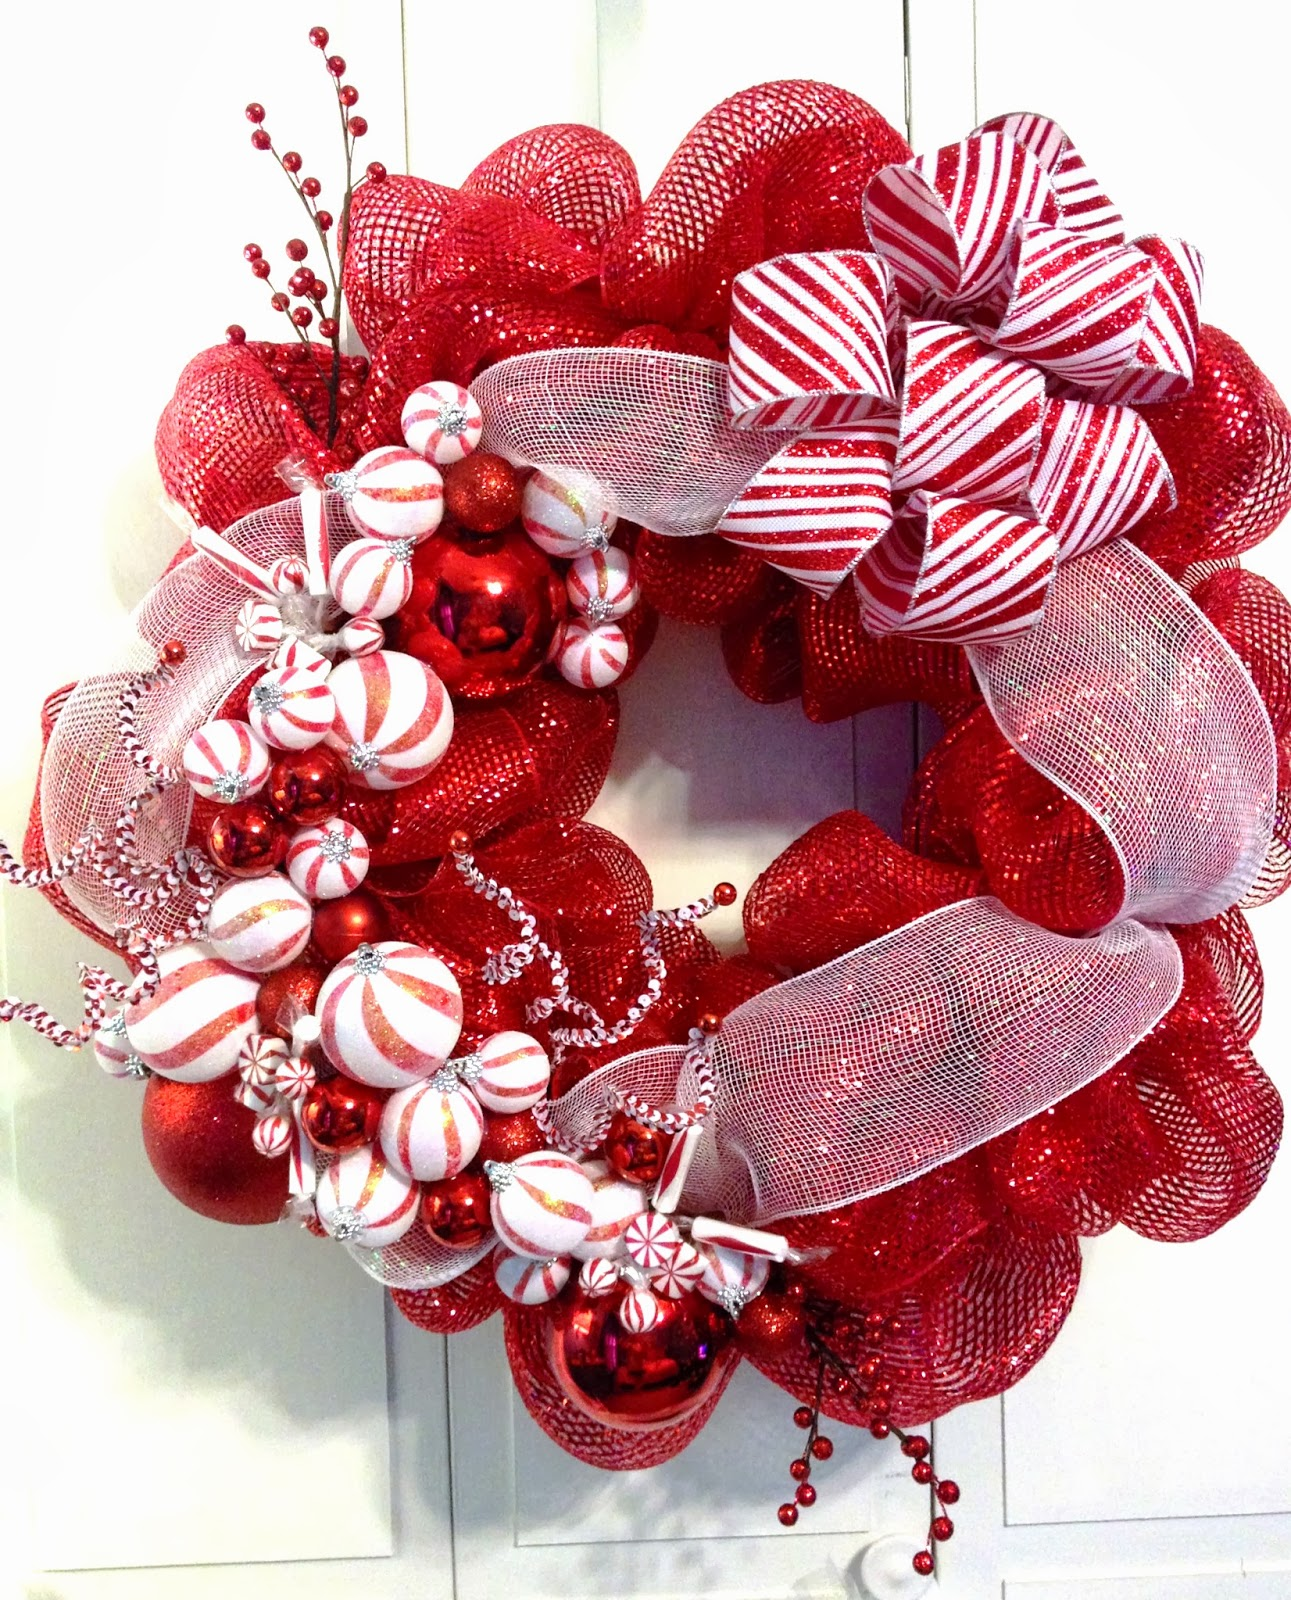 Decorating Wreaths: Tangled Wreaths™: October 2013